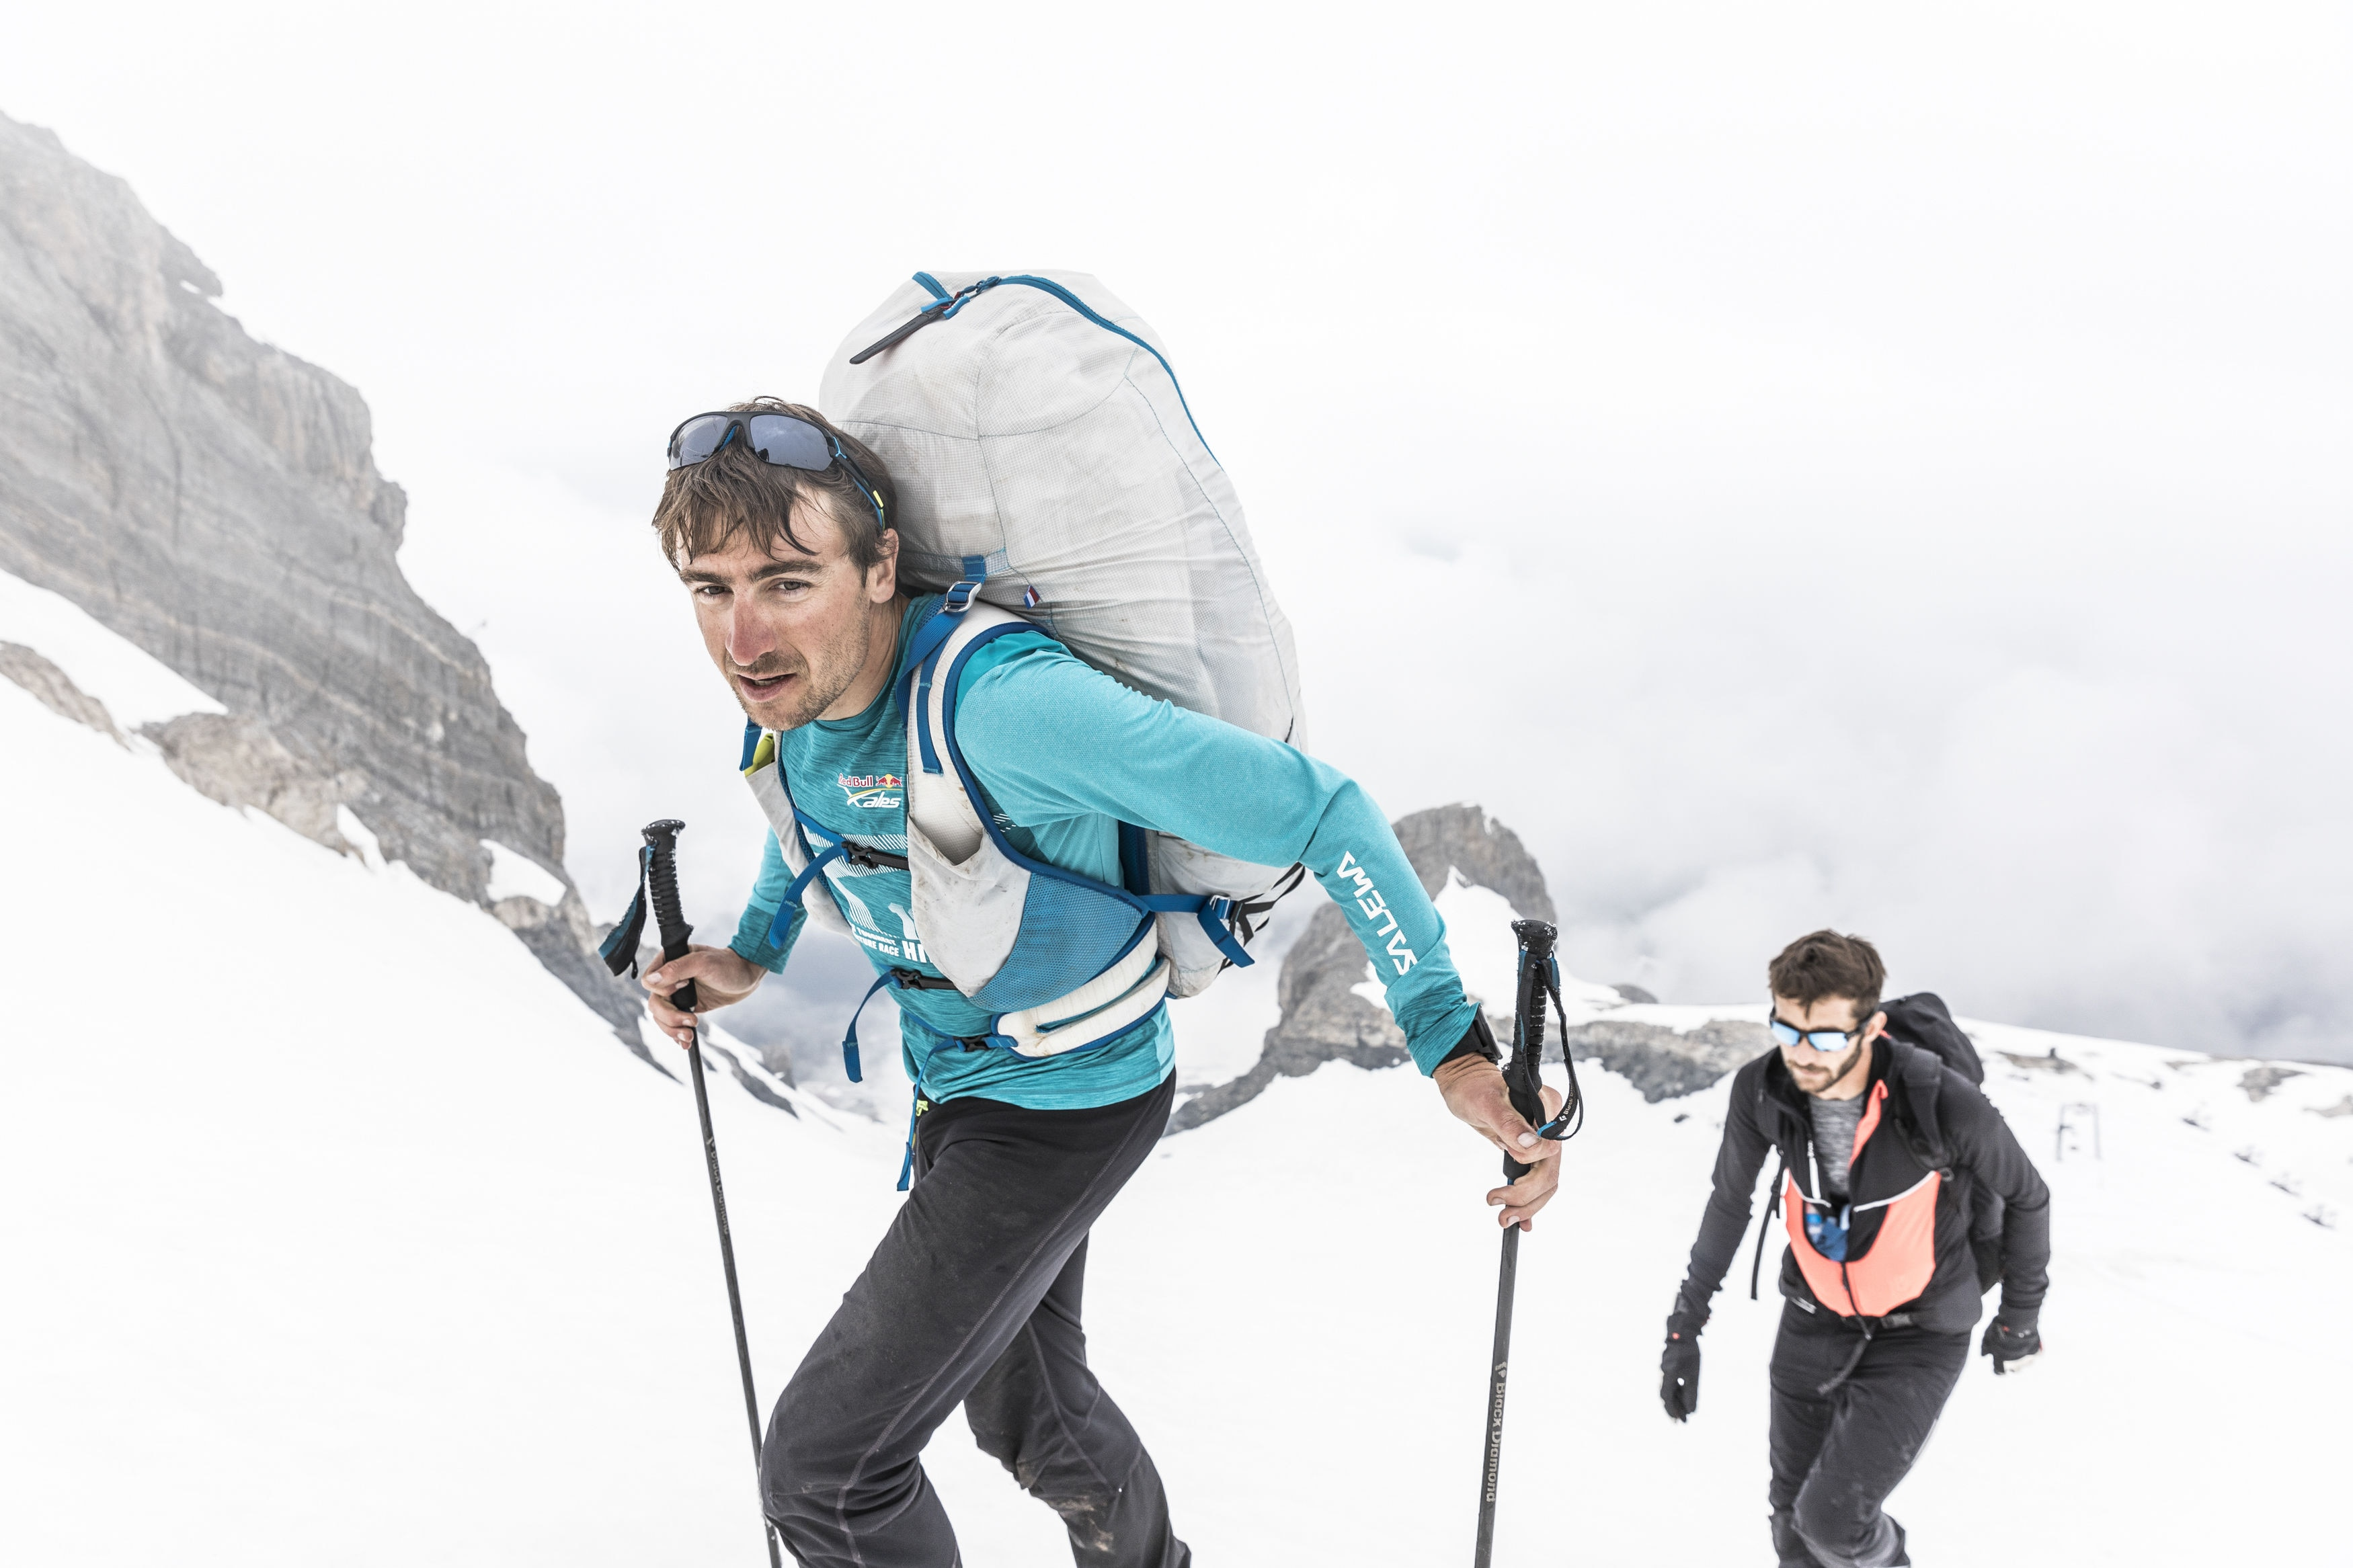 Maxime Pinot (FRA4) hikes during the Red Bull X-Alps at Turnpoint 7, Titlis, Switzerland on June 20, 2019